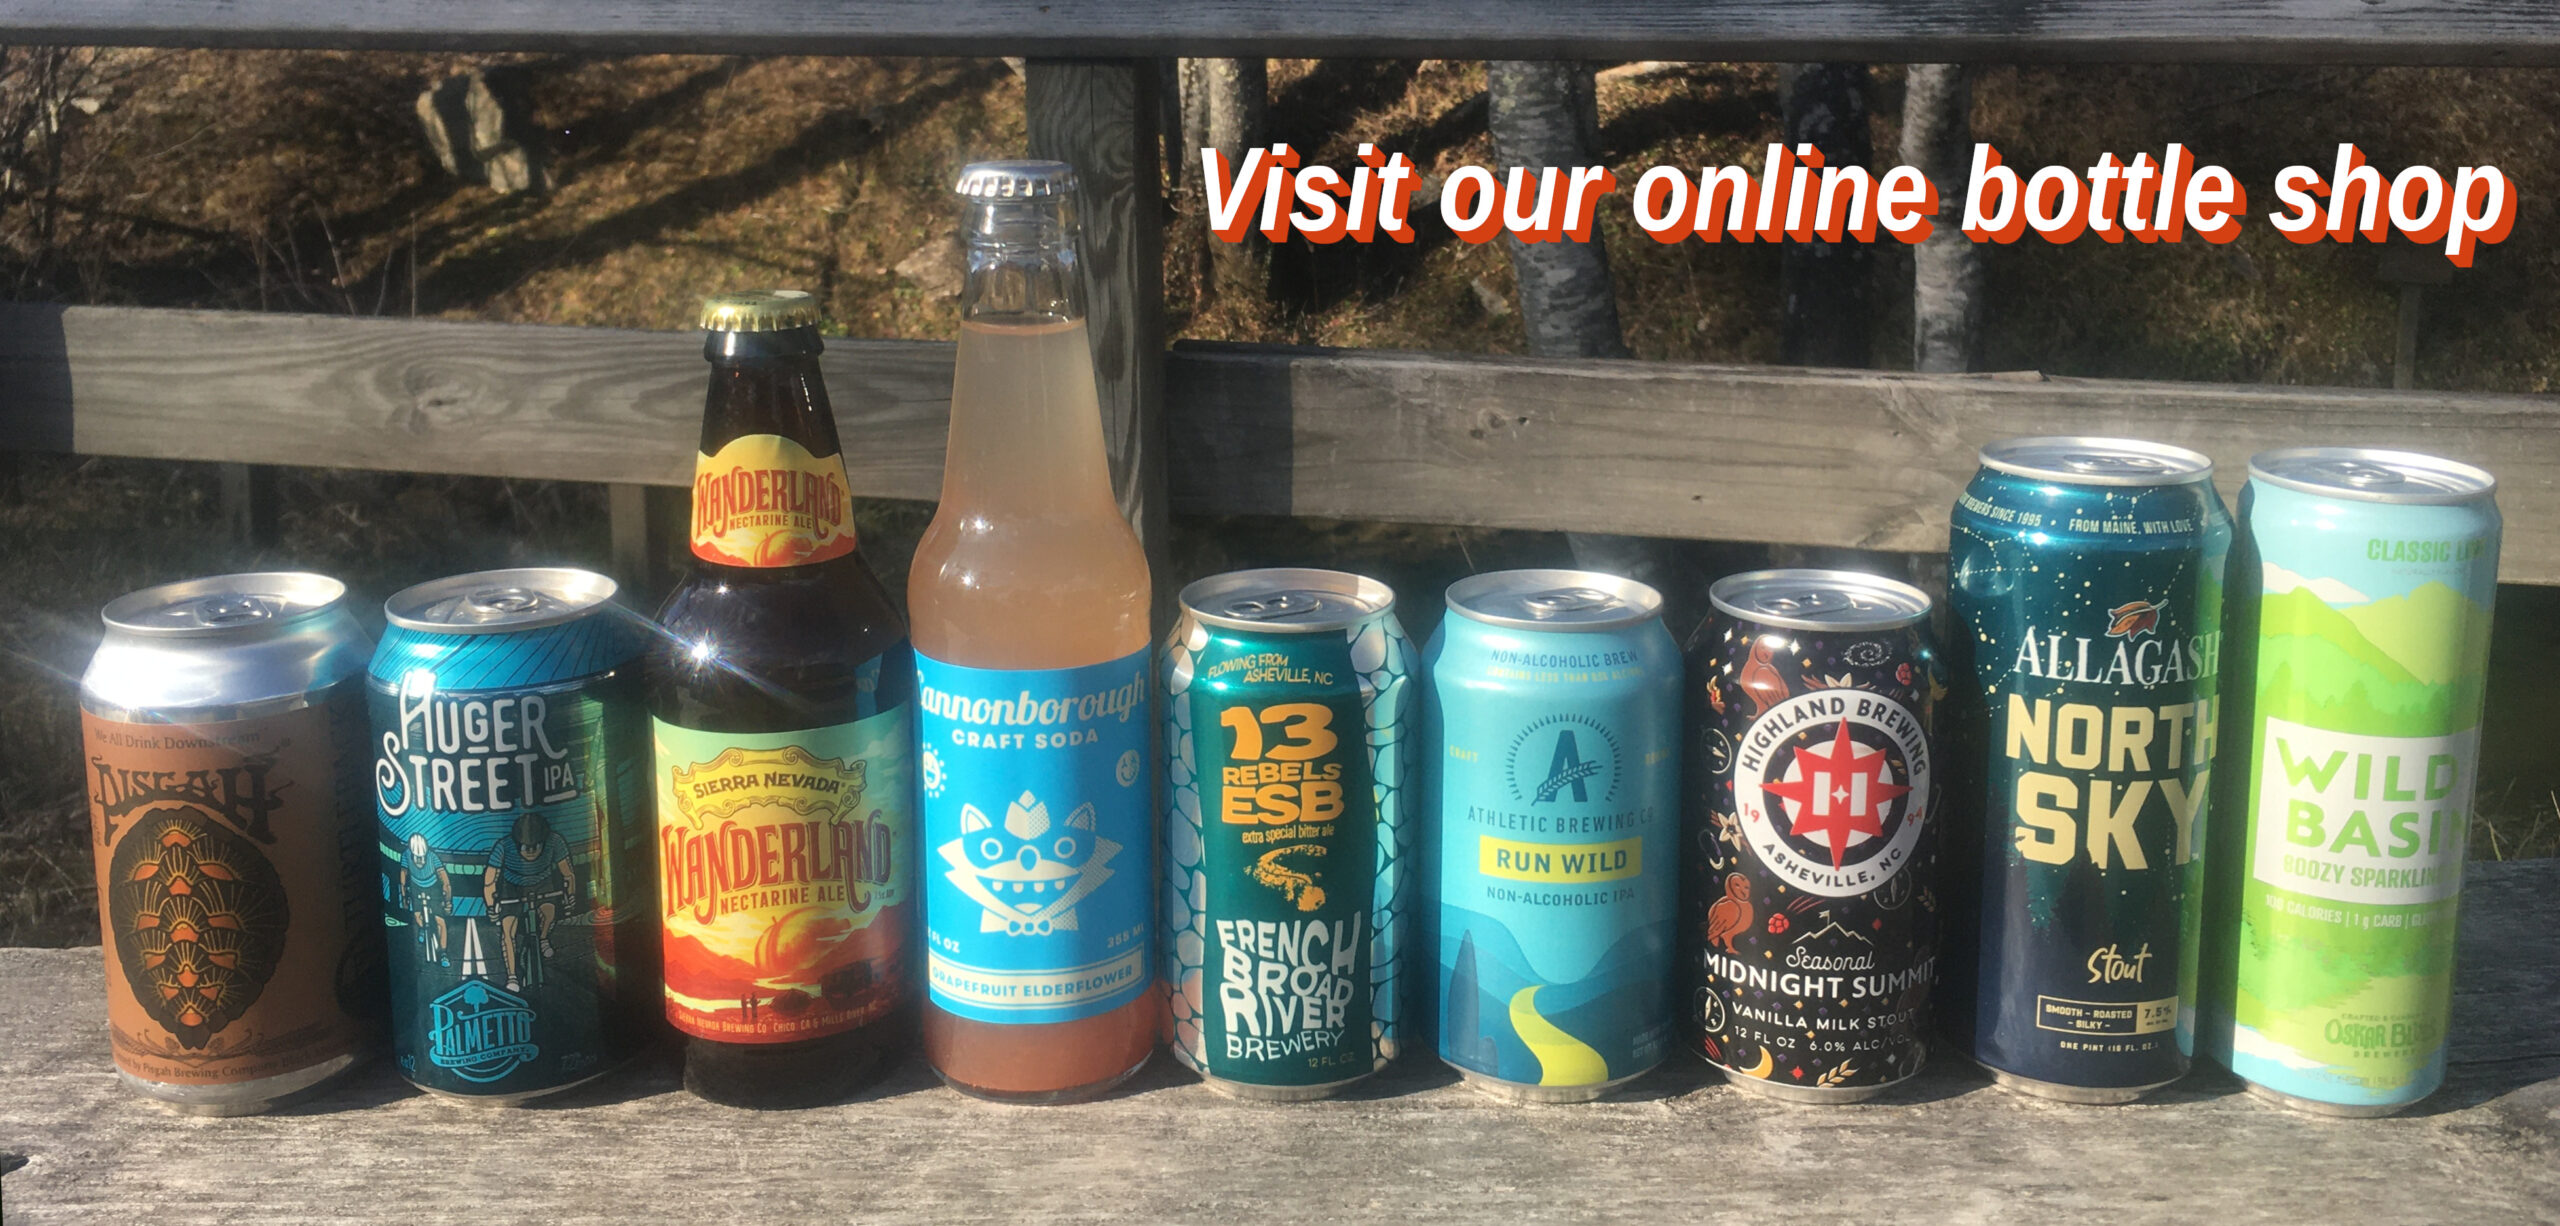 Visit our online bottle shop